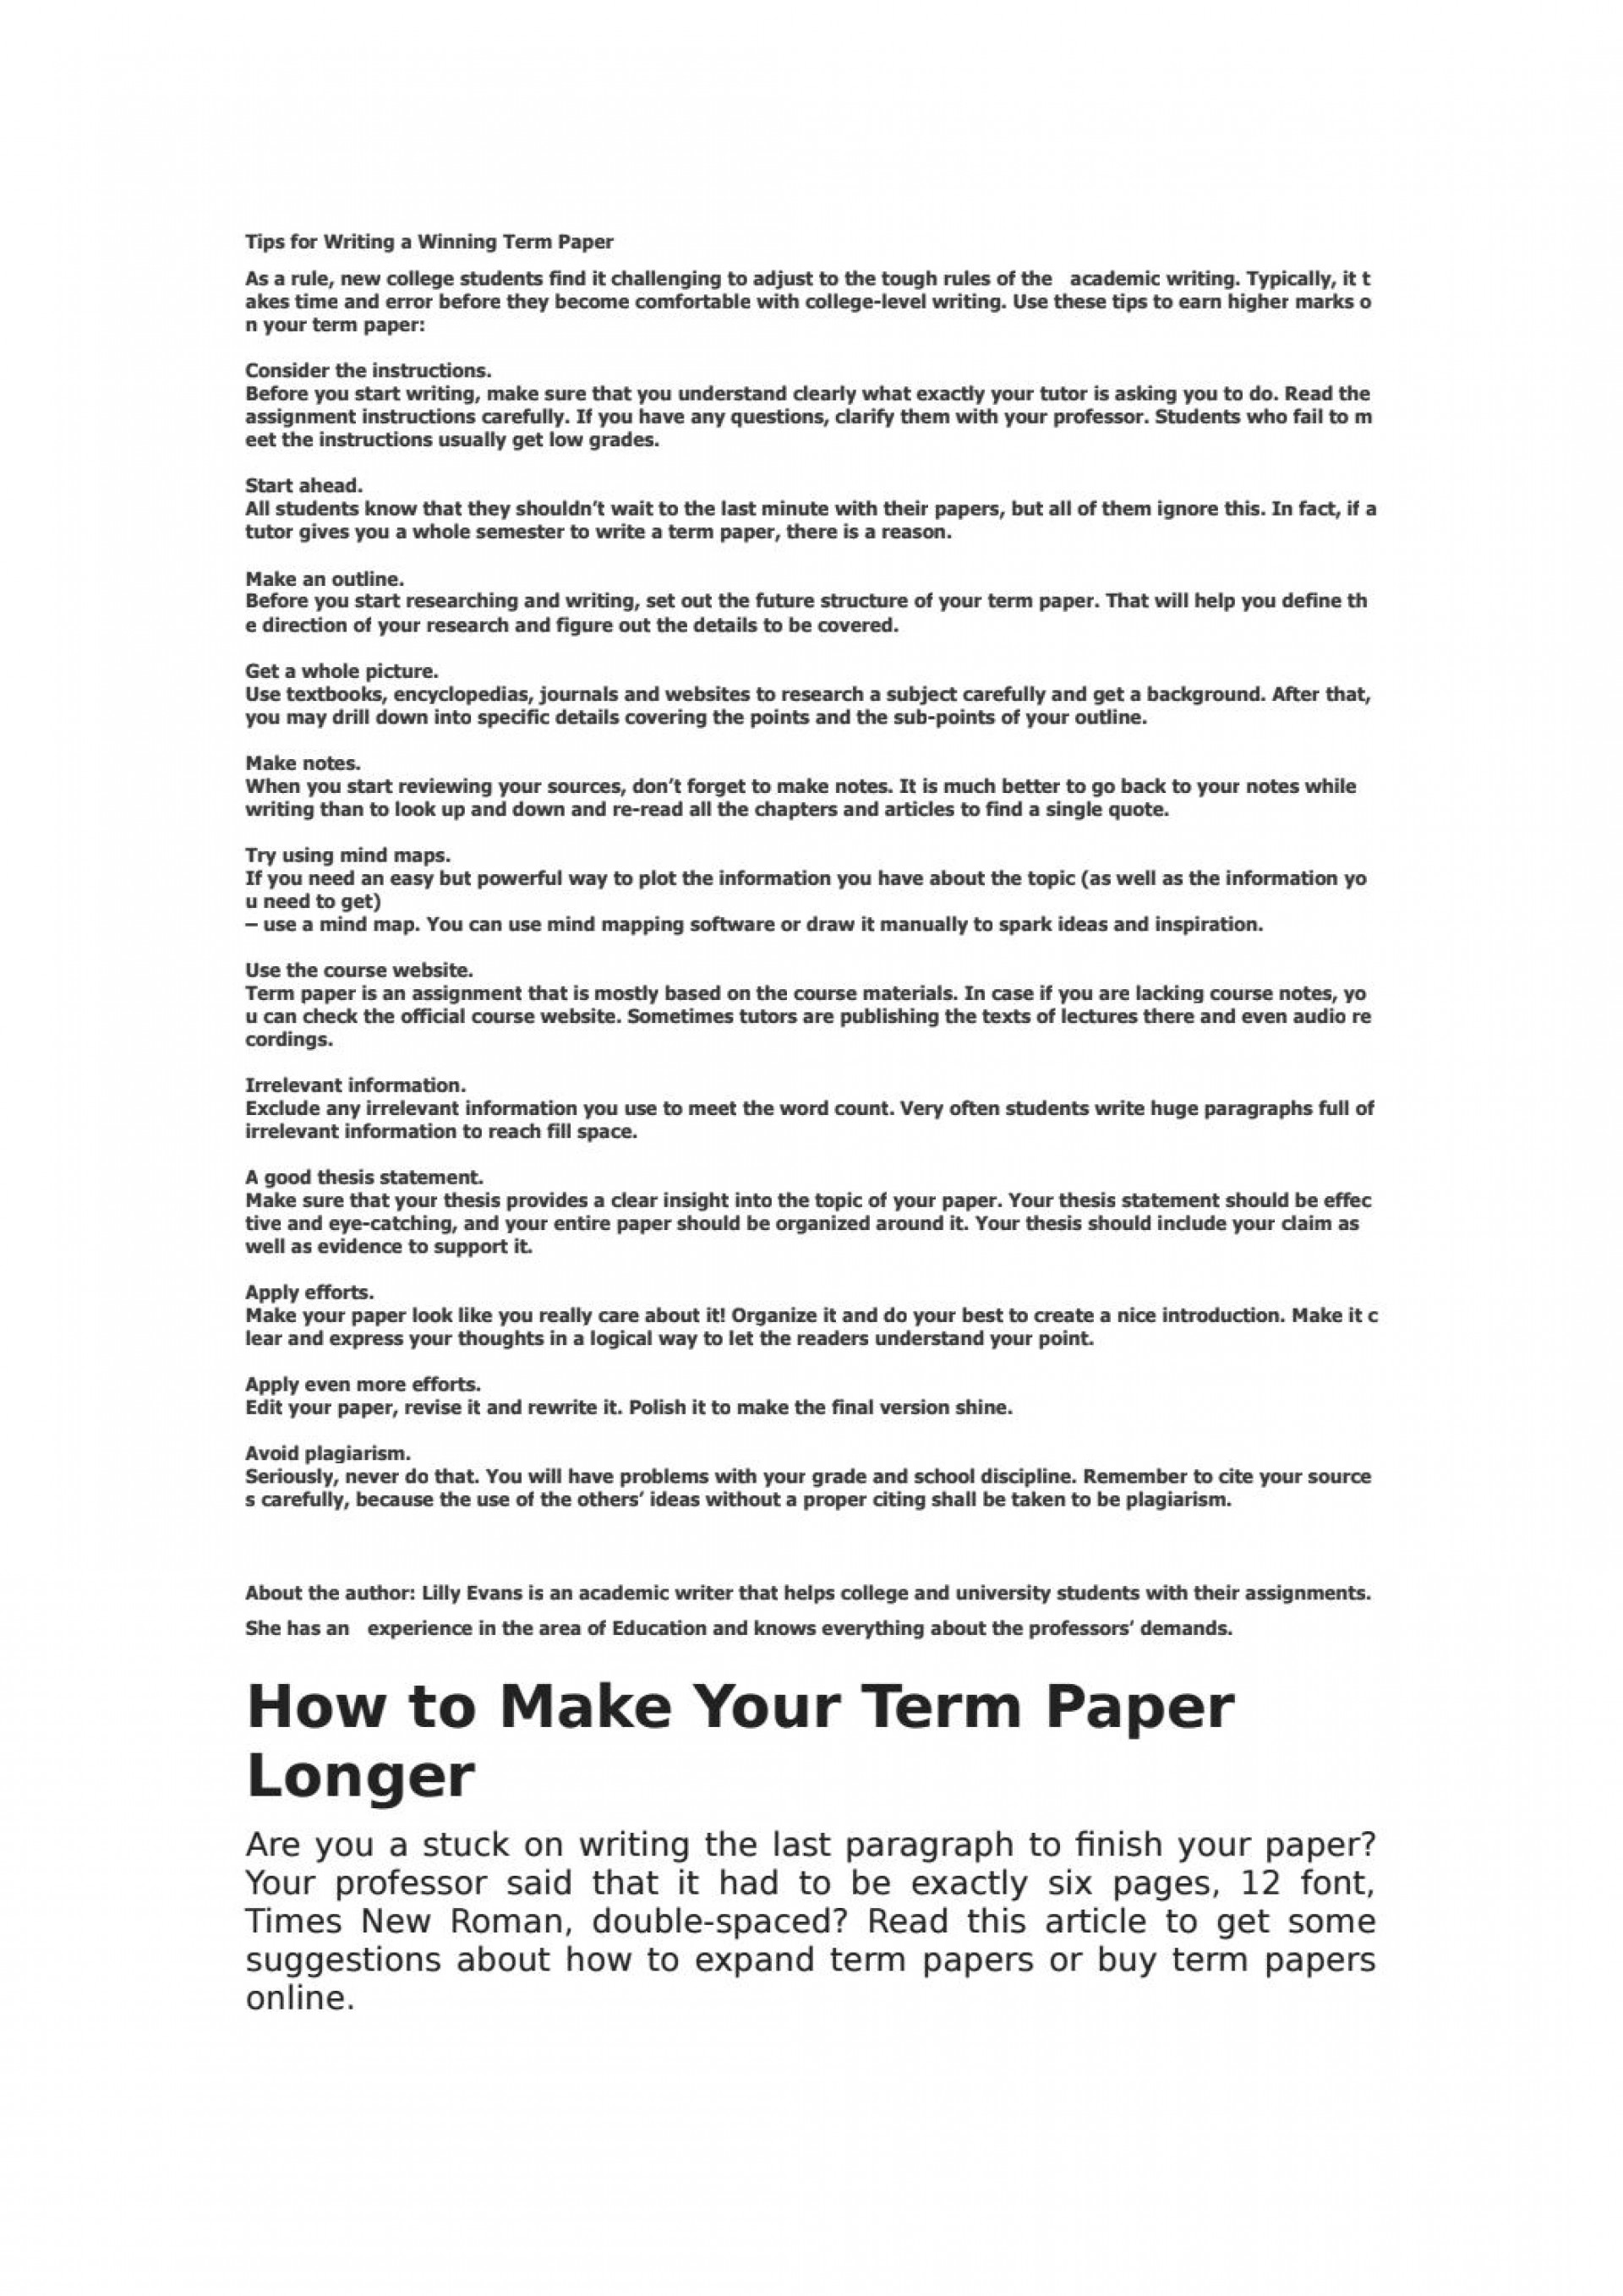 002 Page 1 How Can You Make Research Paper Archaicawful A Longer To Get 1920